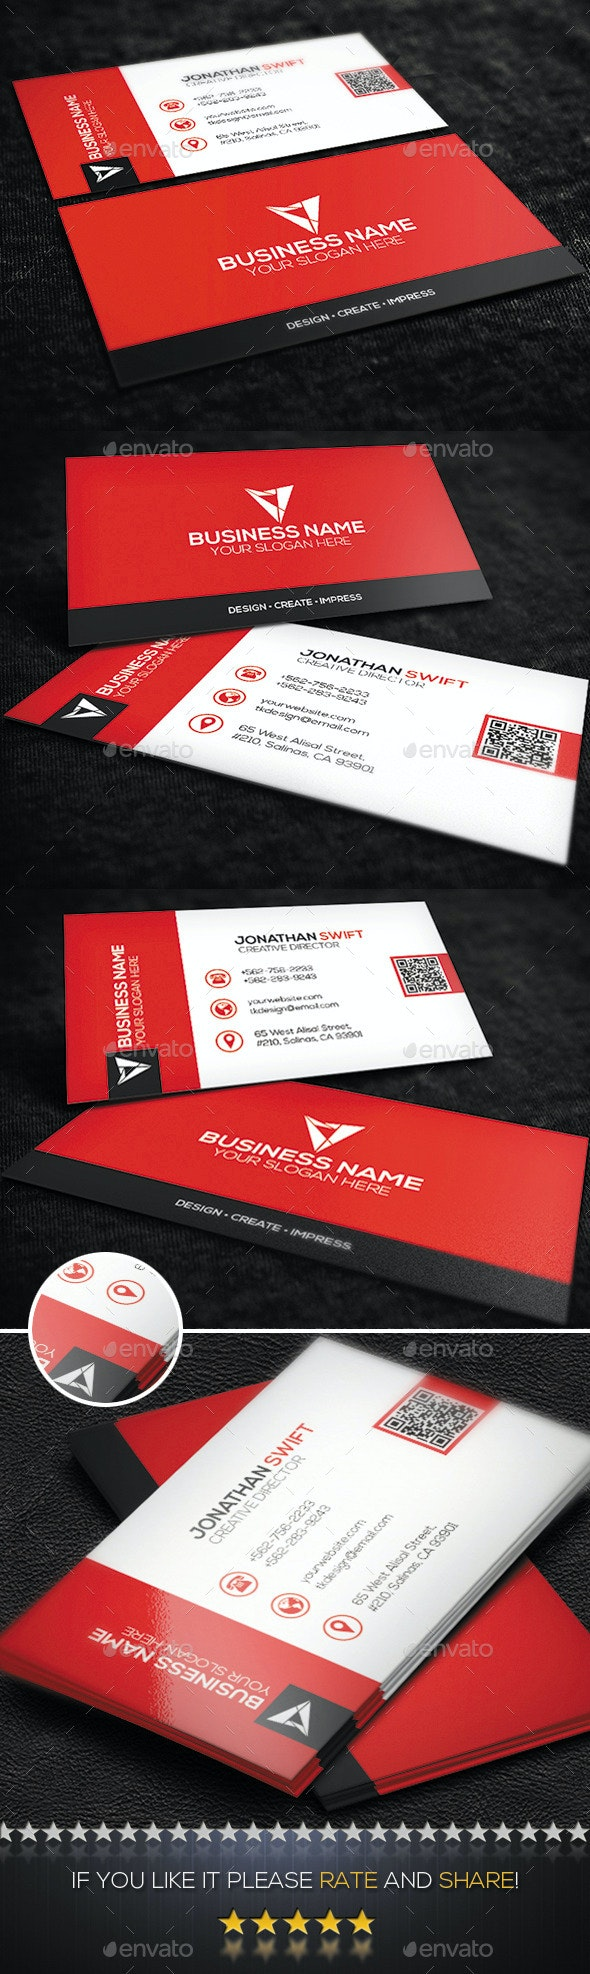 Red Corporate Business Card No.09 - Corporate Business Cards